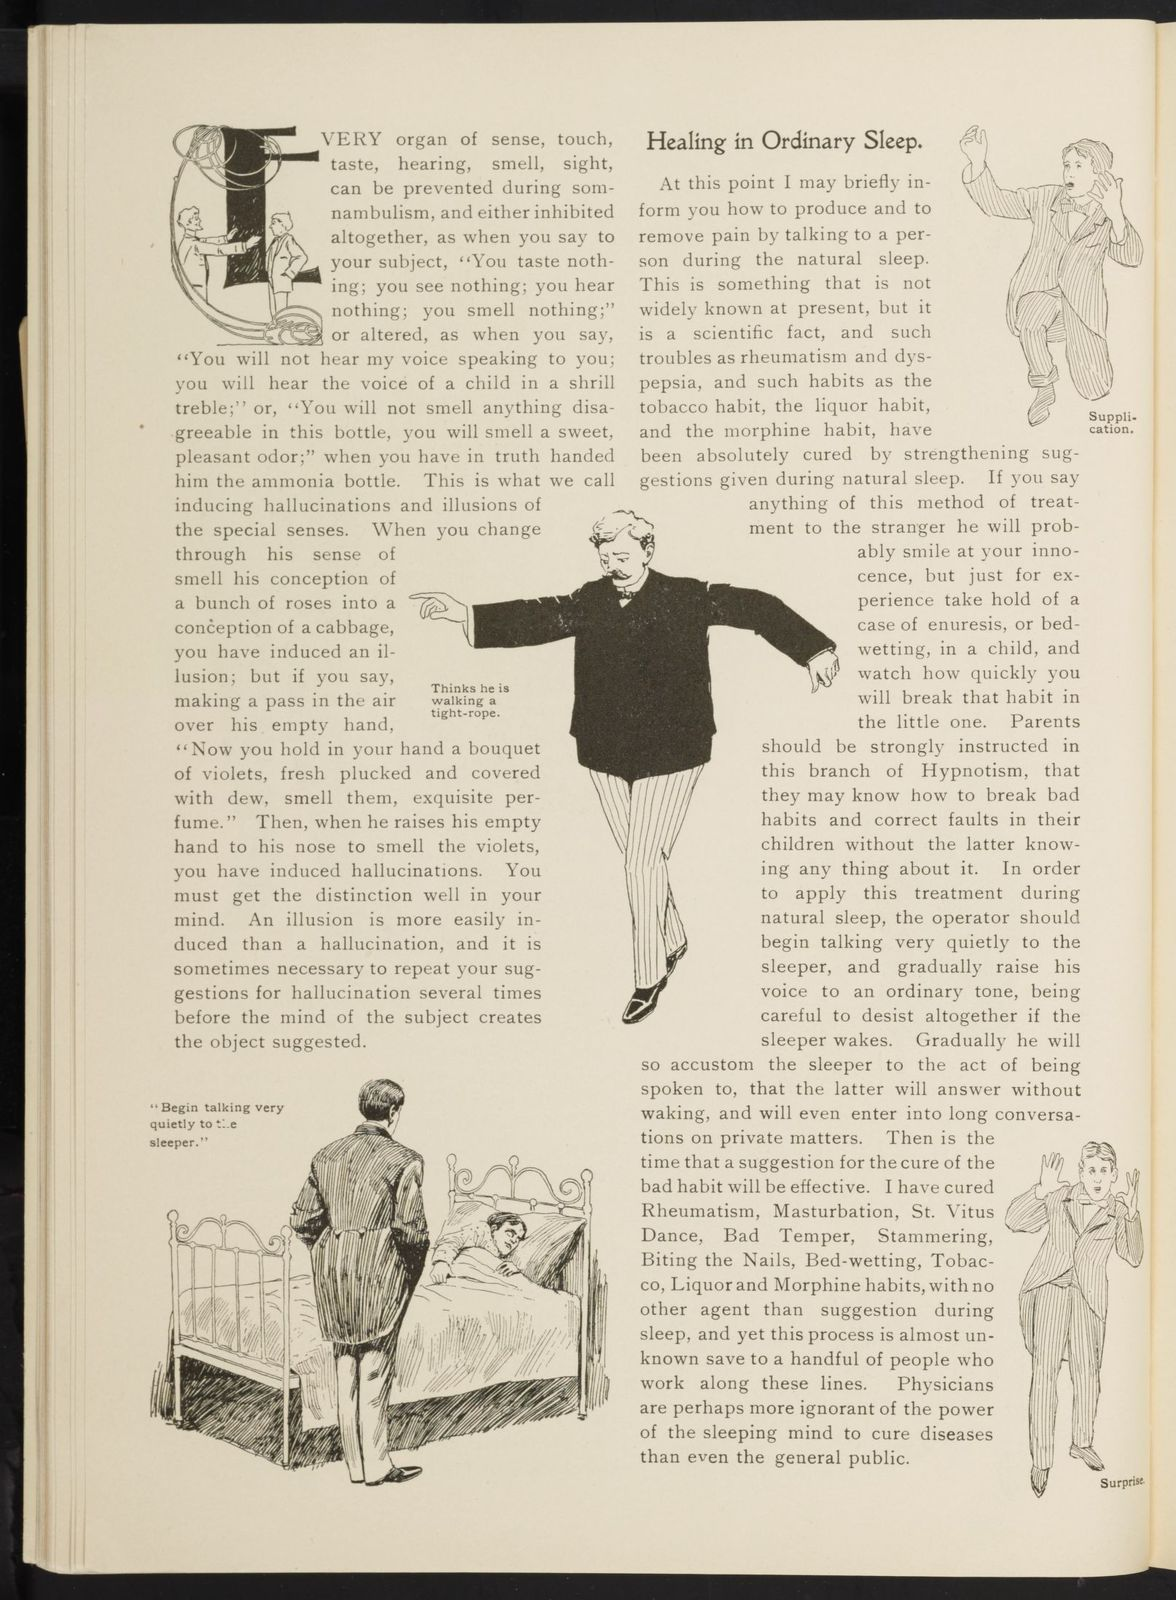 Prof. L.A. Harraden's complete mail course of twenty illustrated lessons in hypnotism.